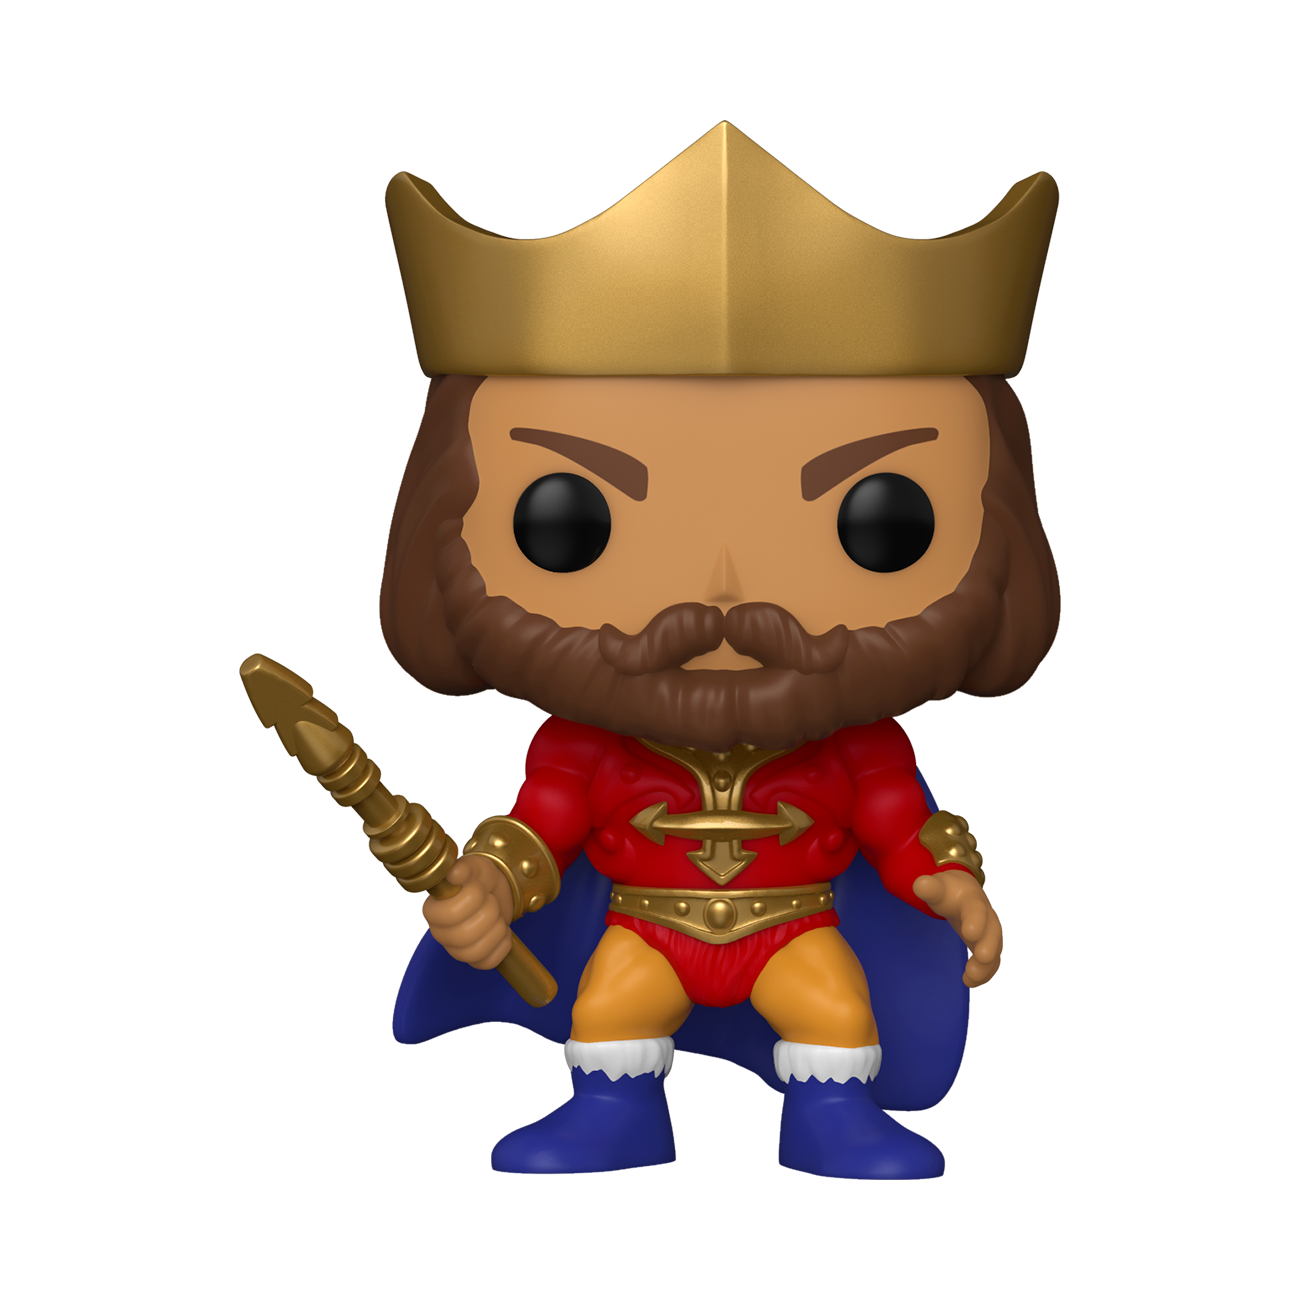 Funko POP Vinyl: MOTU - King Randor (MT)